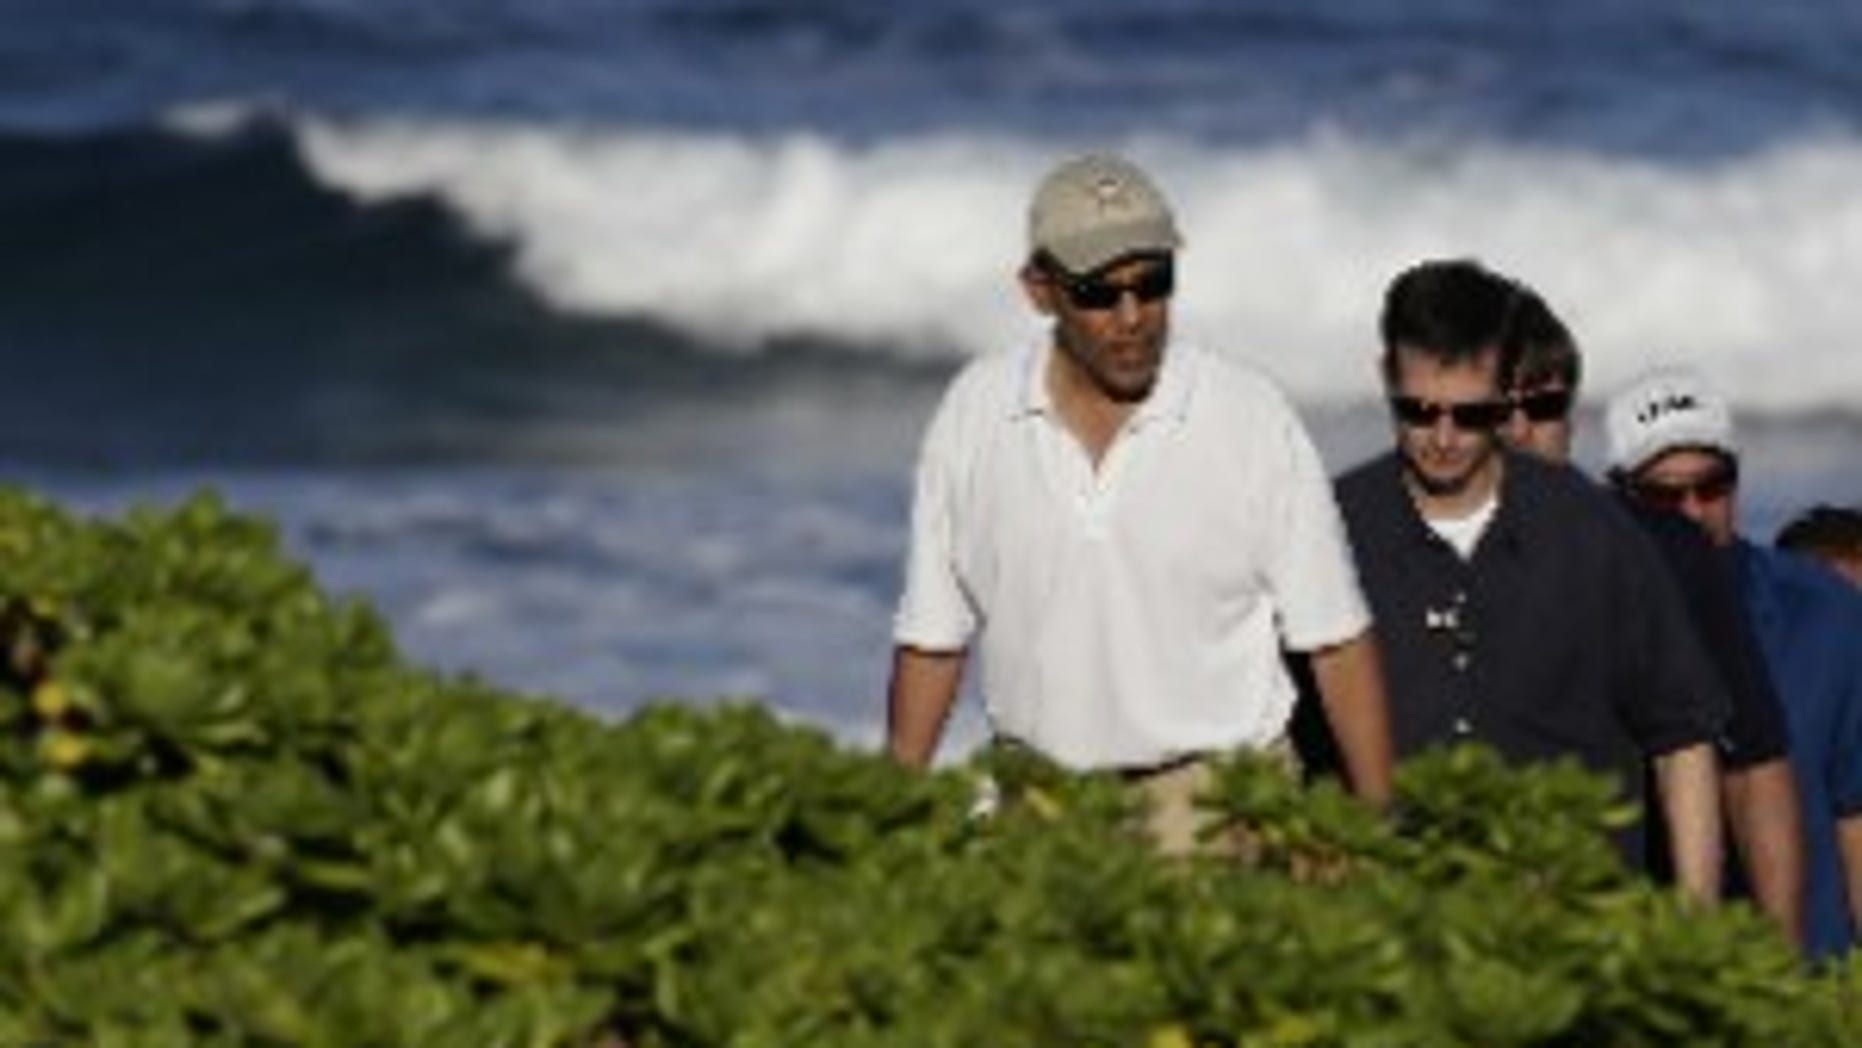 President Barack Obama, left, walks on Pyramid Rock beach on Marine Corps Base Hawaii in Kaneohe Bay, Hawaii Saturday, Dec. 26, 2009. The Obamas are in Hawaii for the holidays.(AP Photo/Alex Brandon)